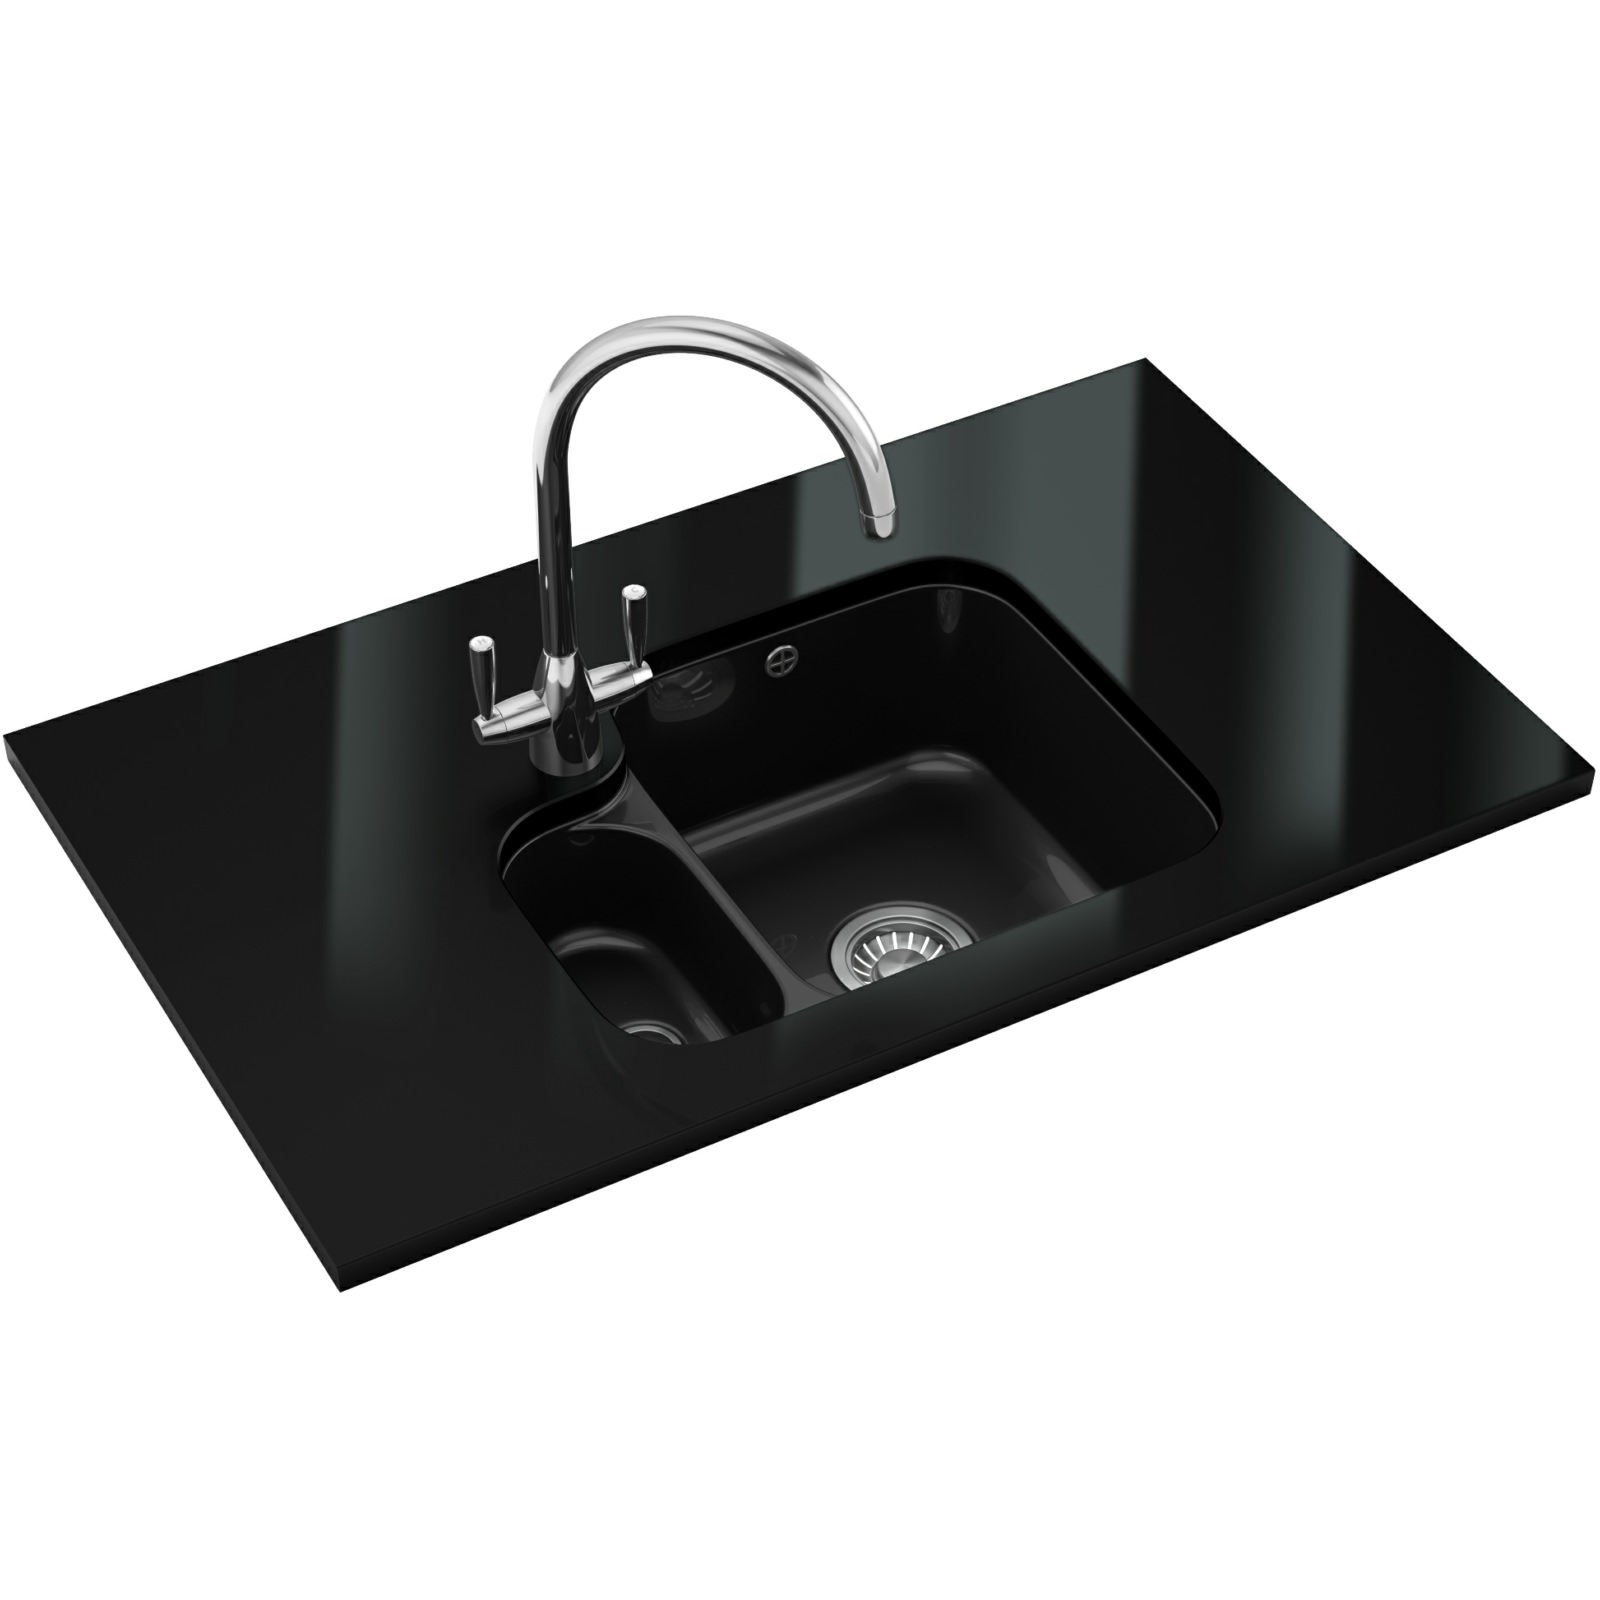 Franke Black Kitchen Sink: Franke V And B Designer Pack VBK 160 Ceramic Black Sink